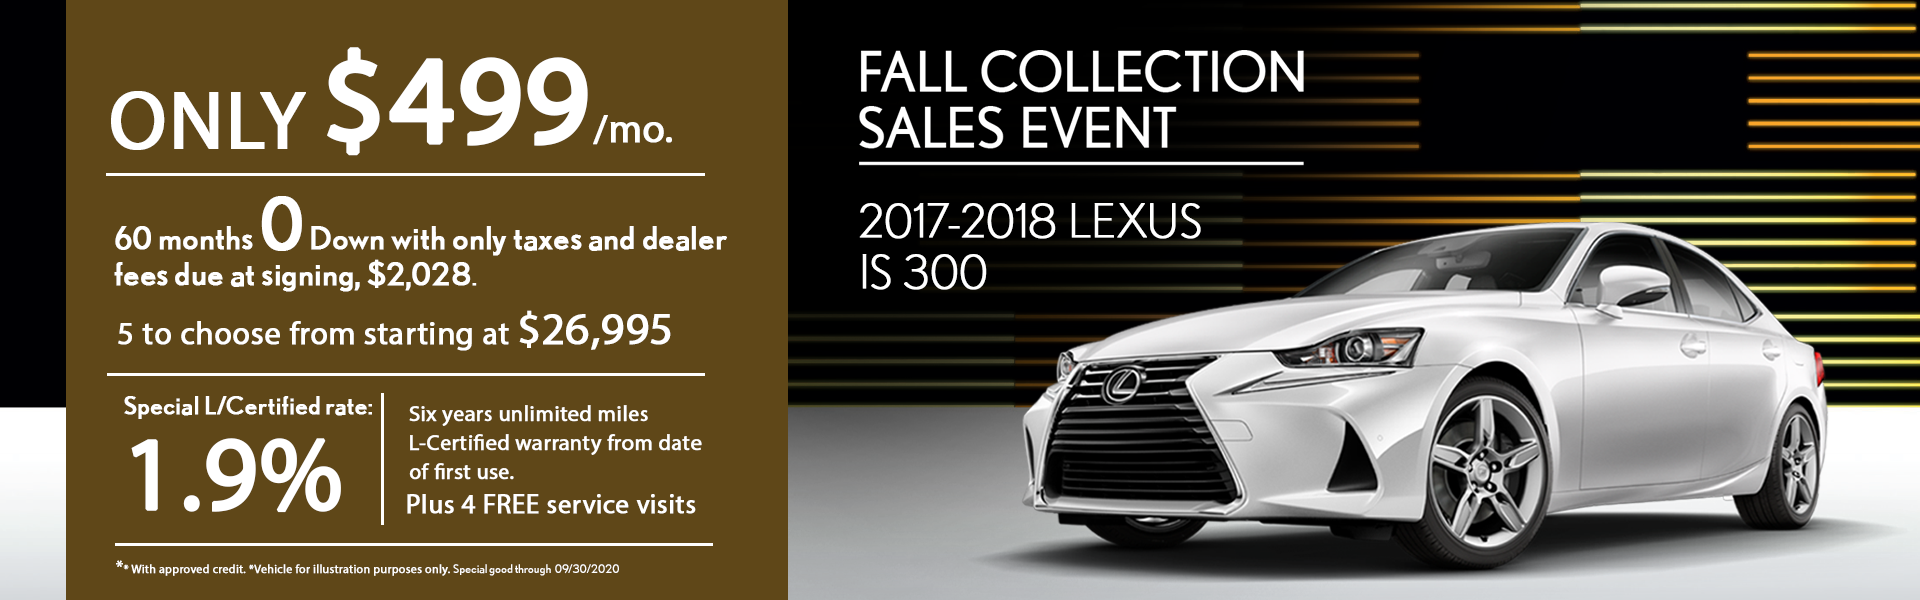 Fall collection Sales event IS 300 2017-2018 special